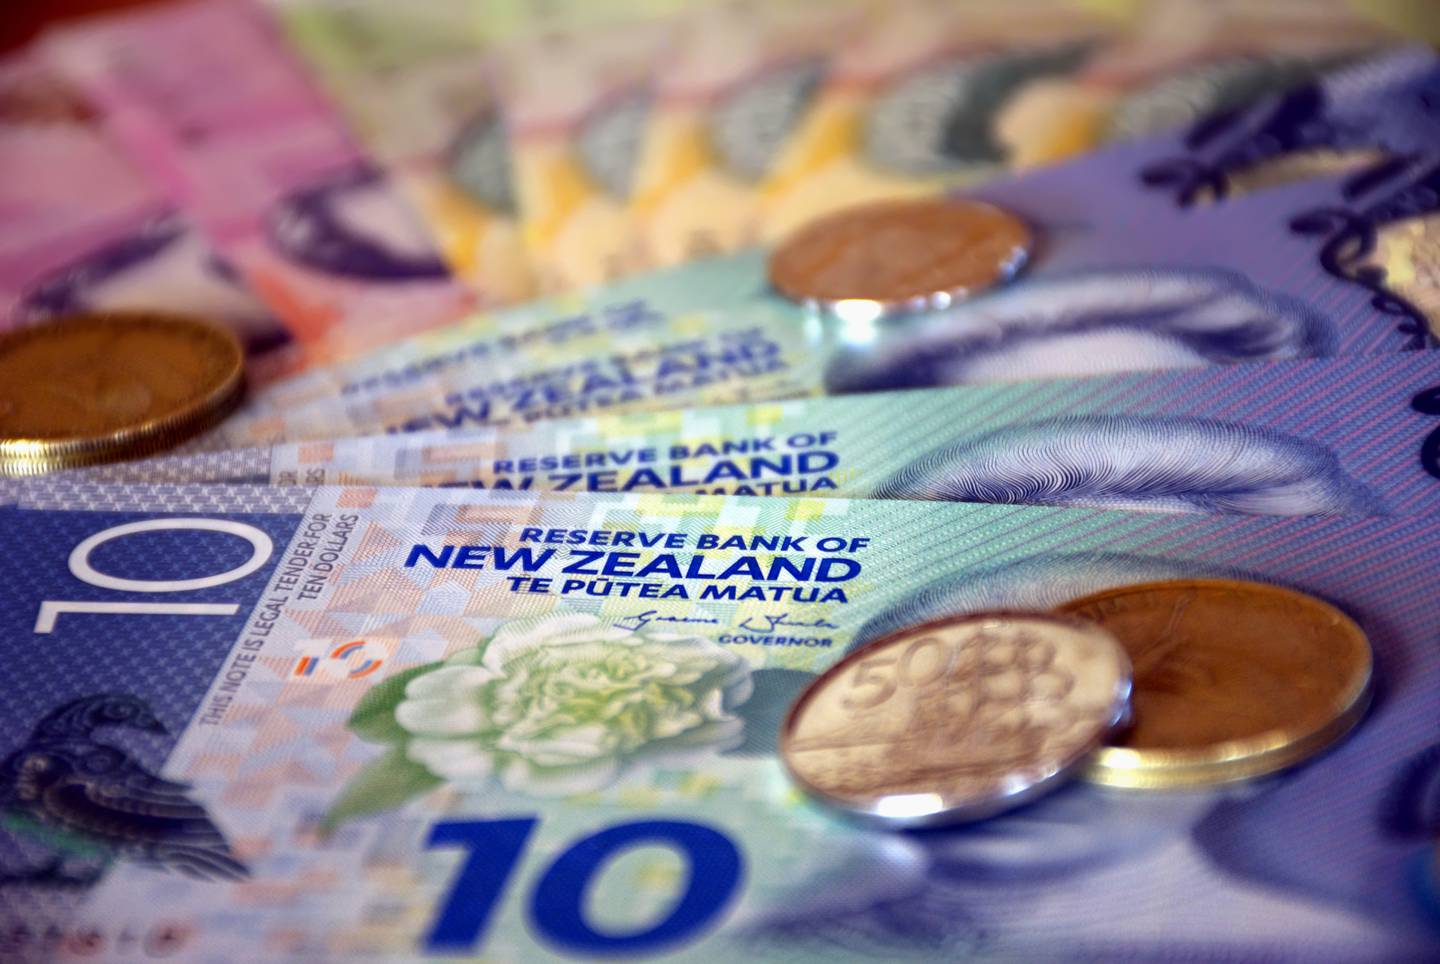 A mixture of New Zealand Bank notes and coins.